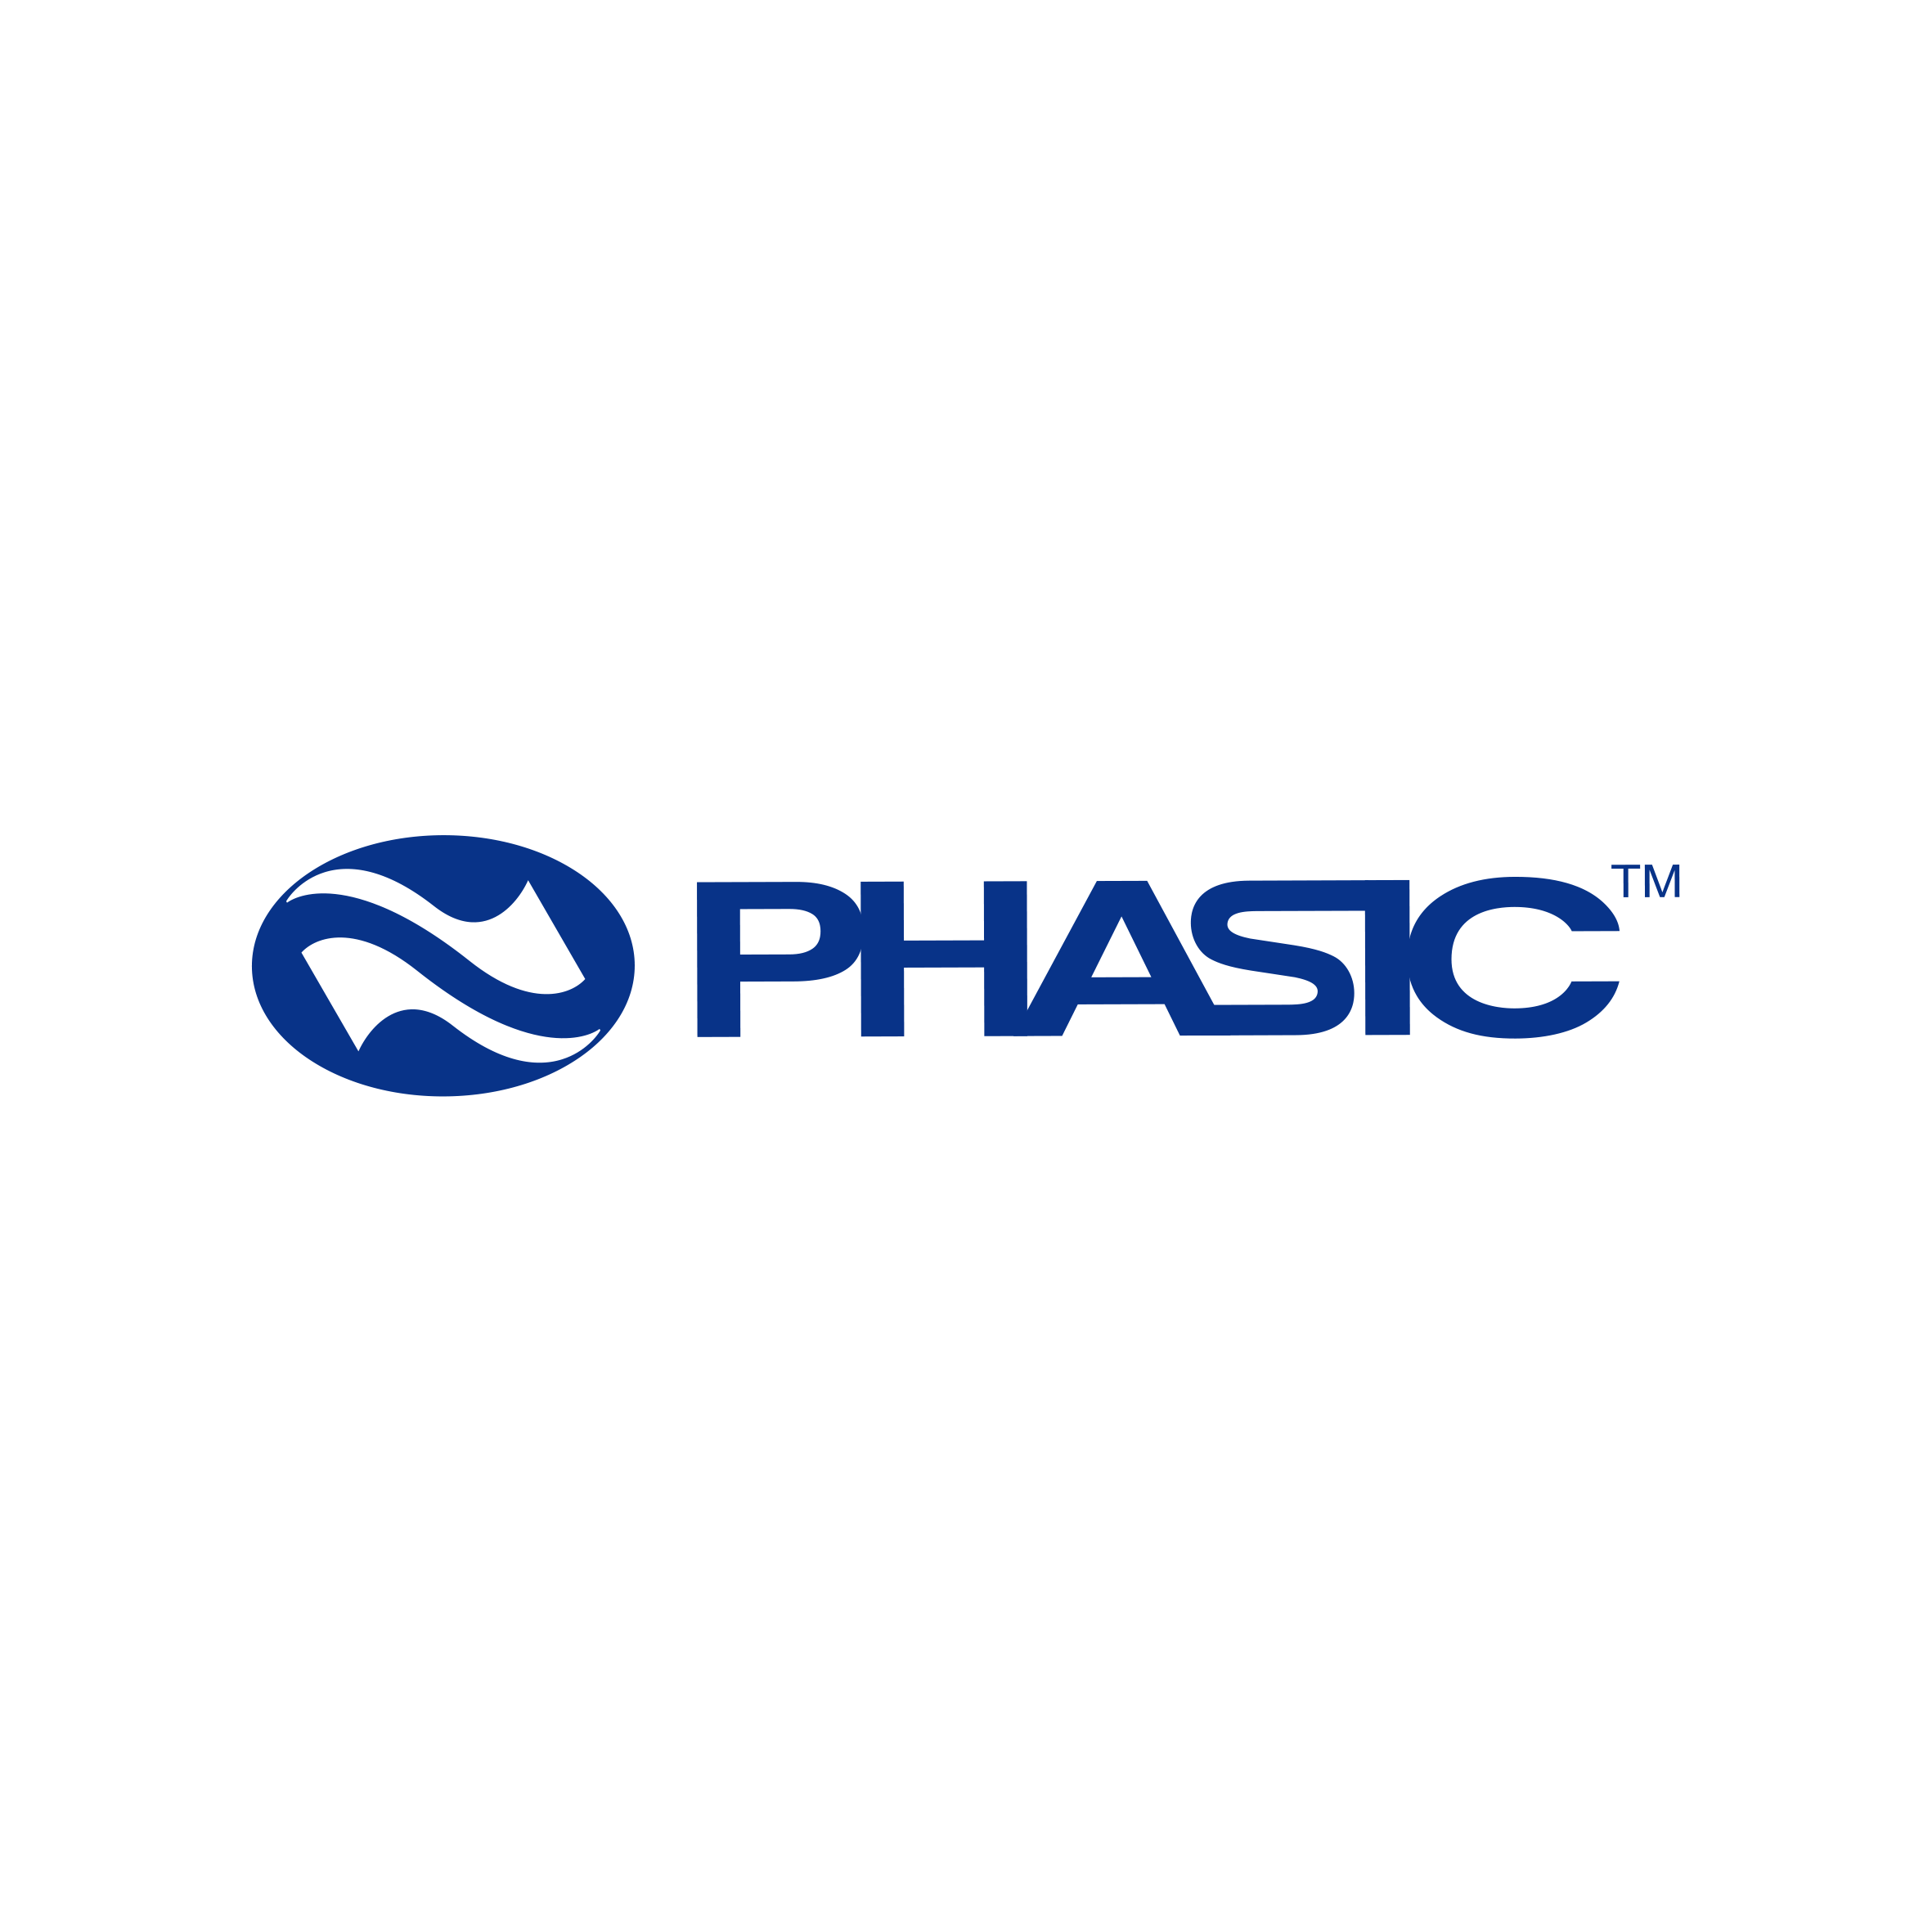 PHASIC CORPORATION